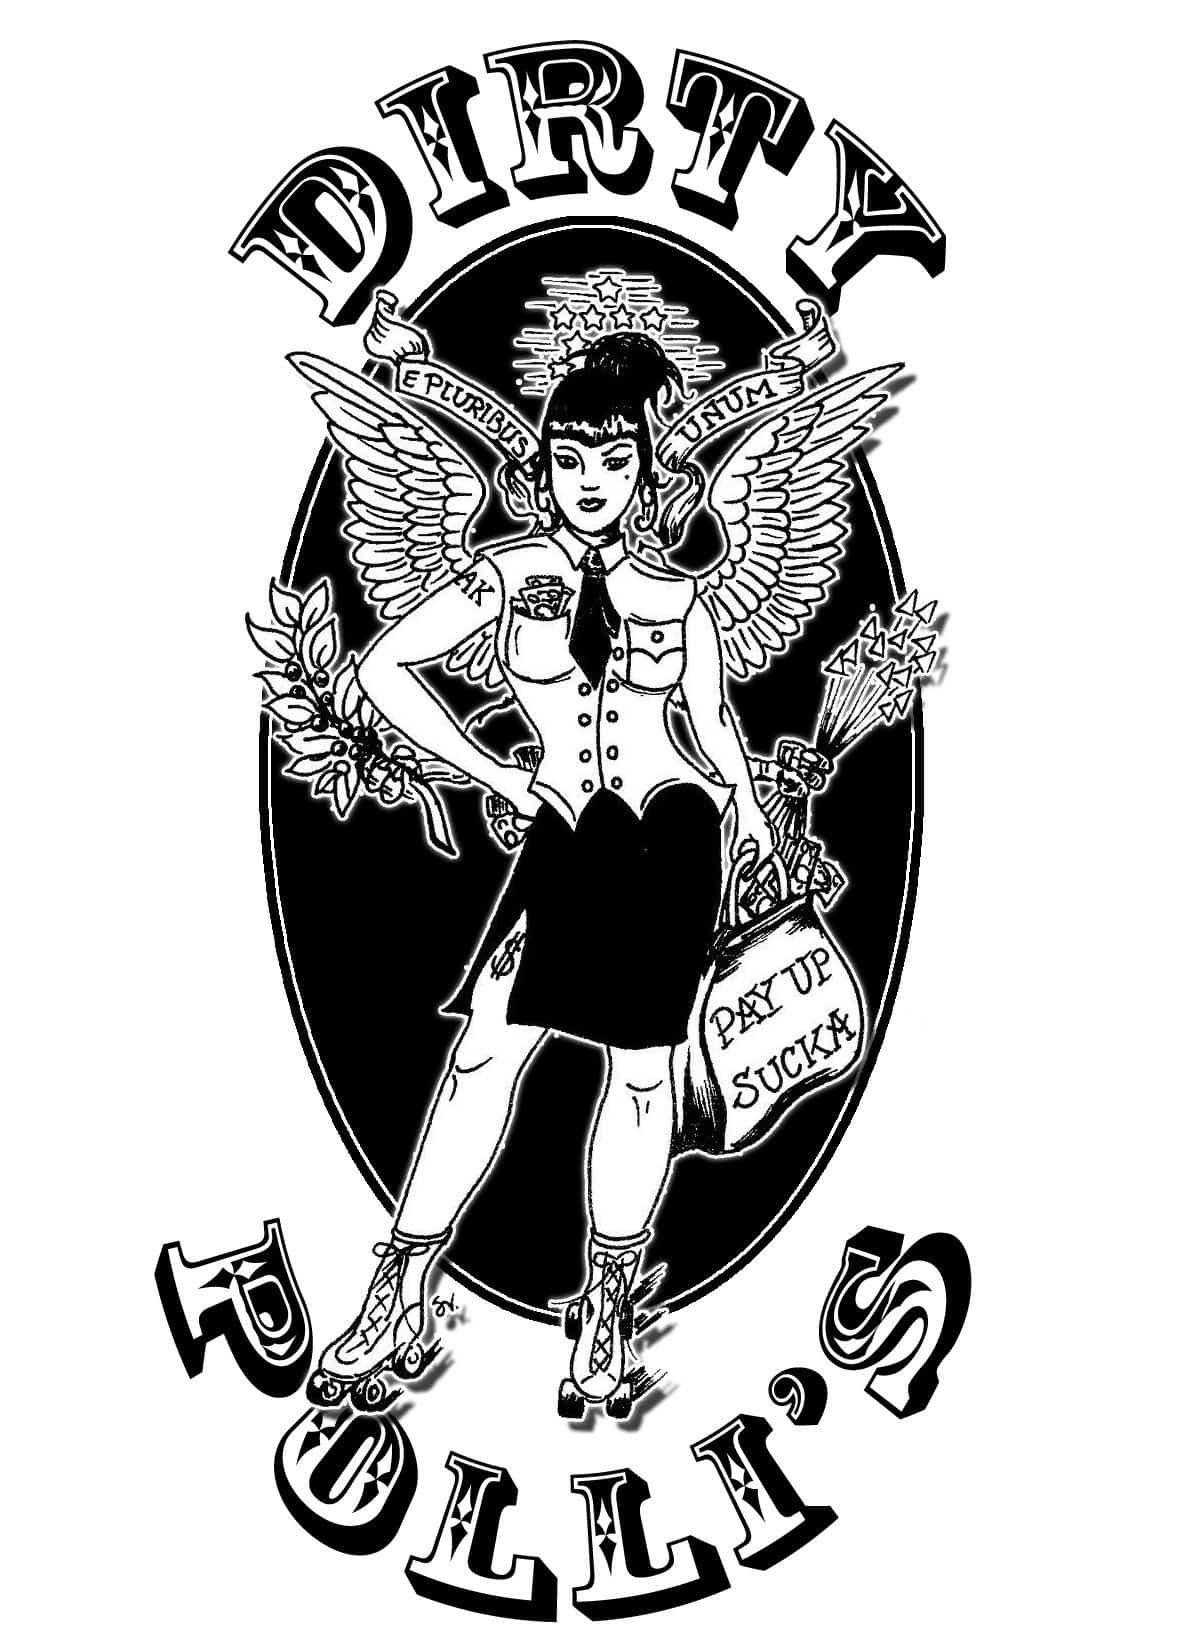 One of the amazing rollergirls drew the rollergril & I made it into a team logo.